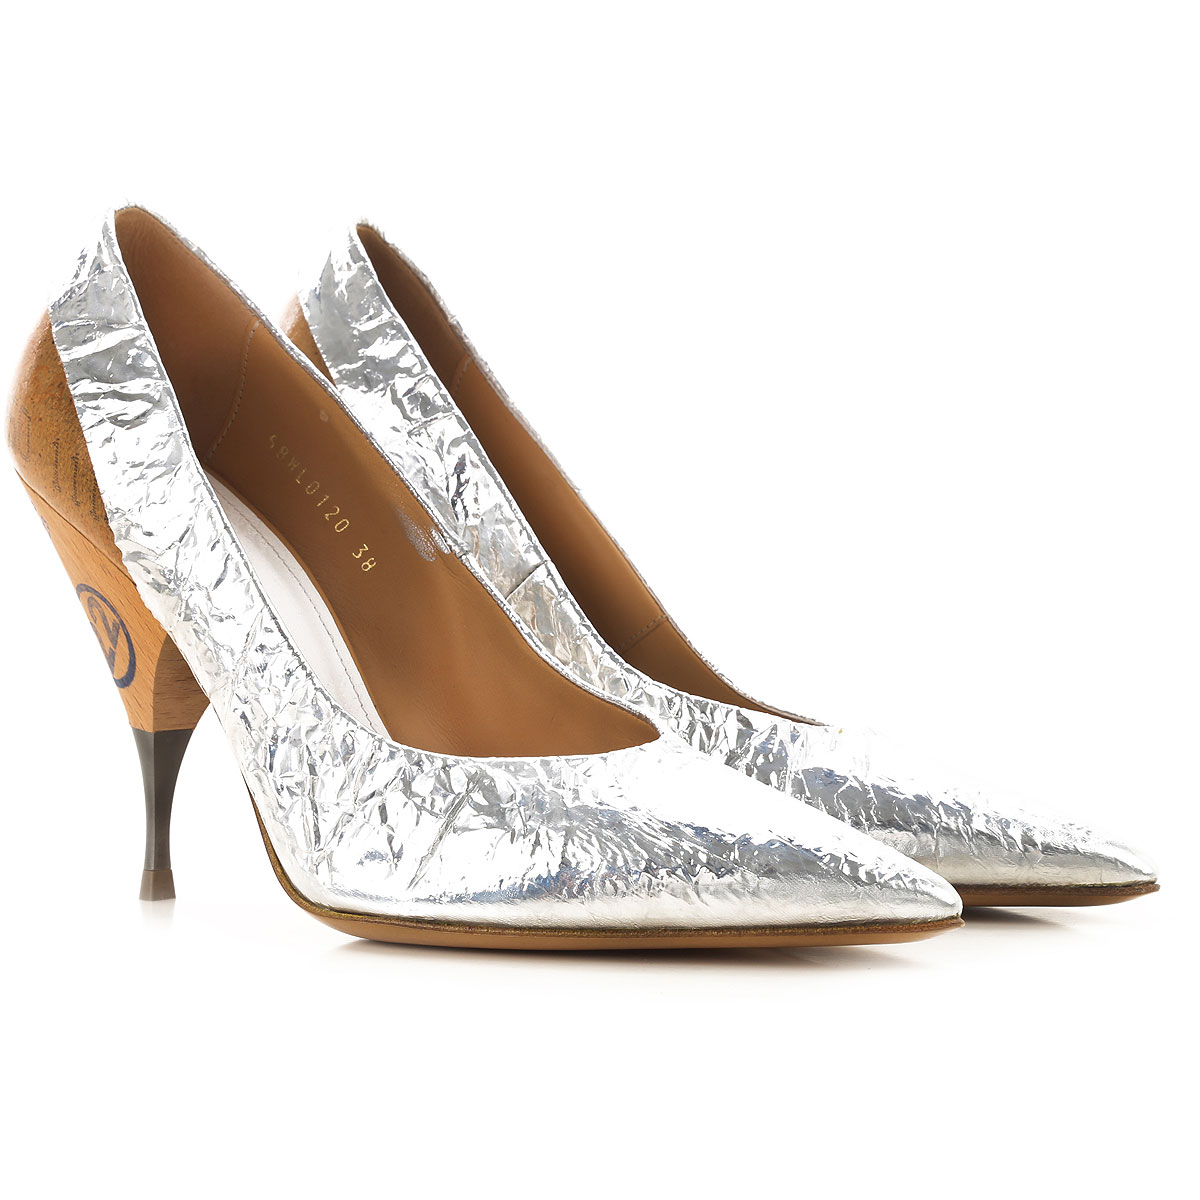 Maison Martin Margiela Pumps & High Heels for Women On Sale in Outlet, Silver, Metallic Leather, 2019, 8 9